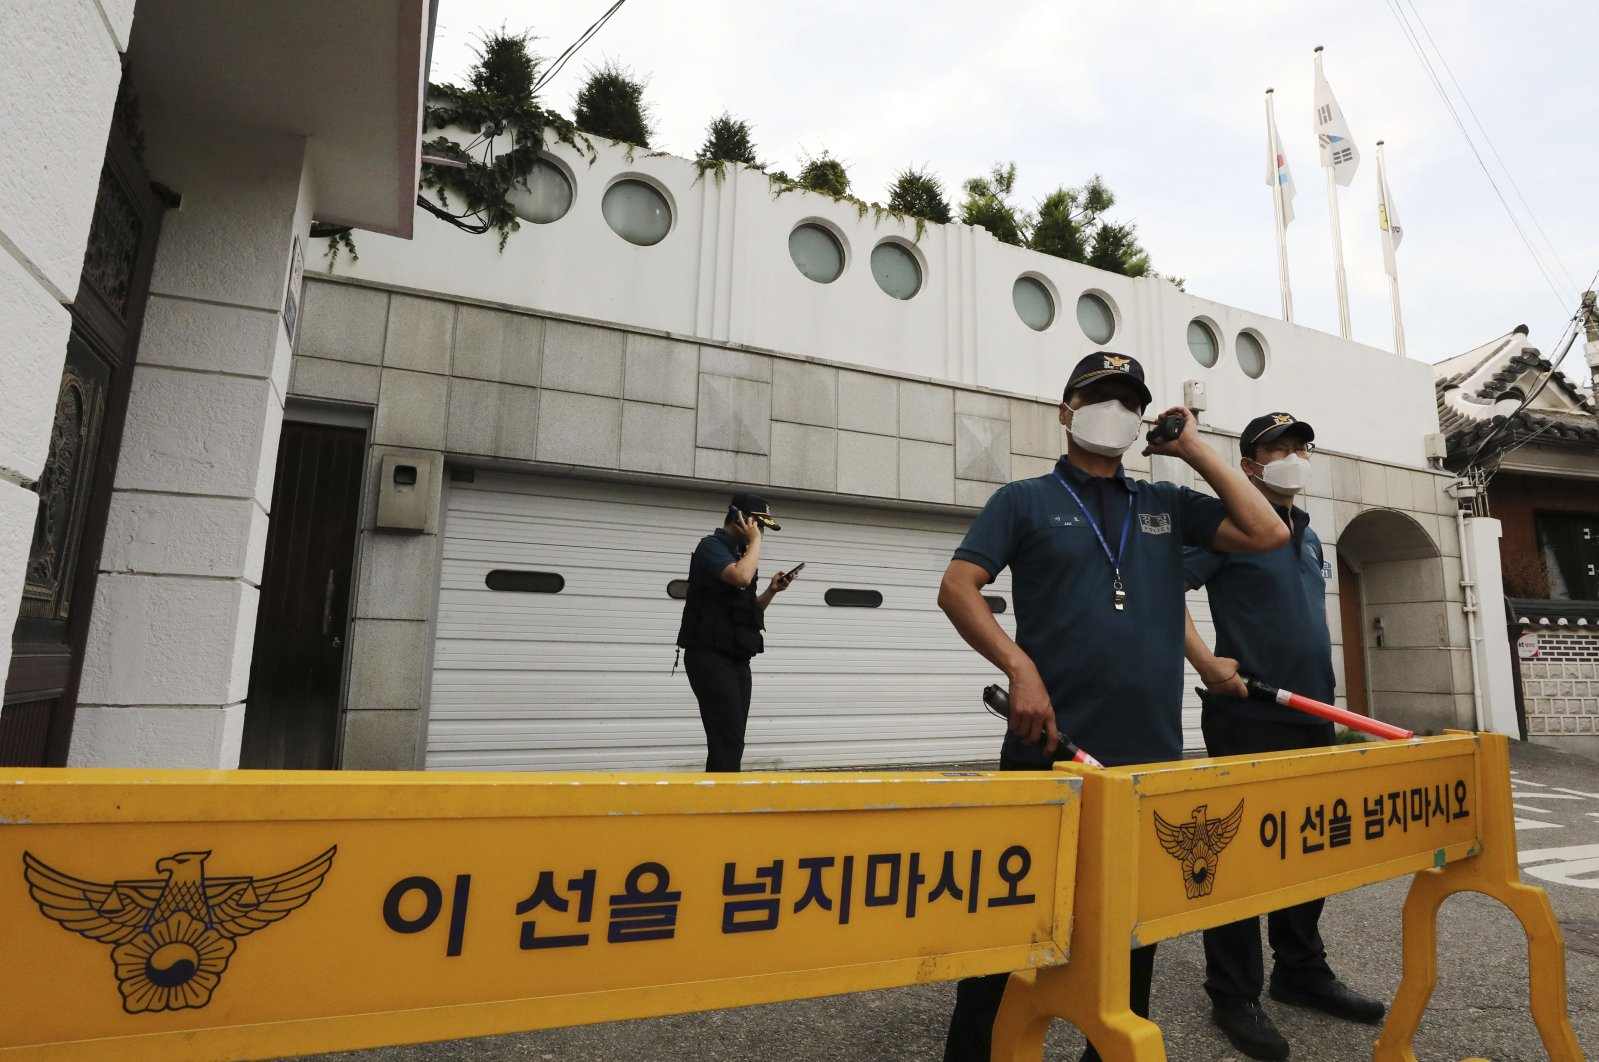 Police officers stand guard in front of the house of Seoul Mayor Park Won-soon in Seoul, South Korea, July 9, 2020. (Newsis via AP)